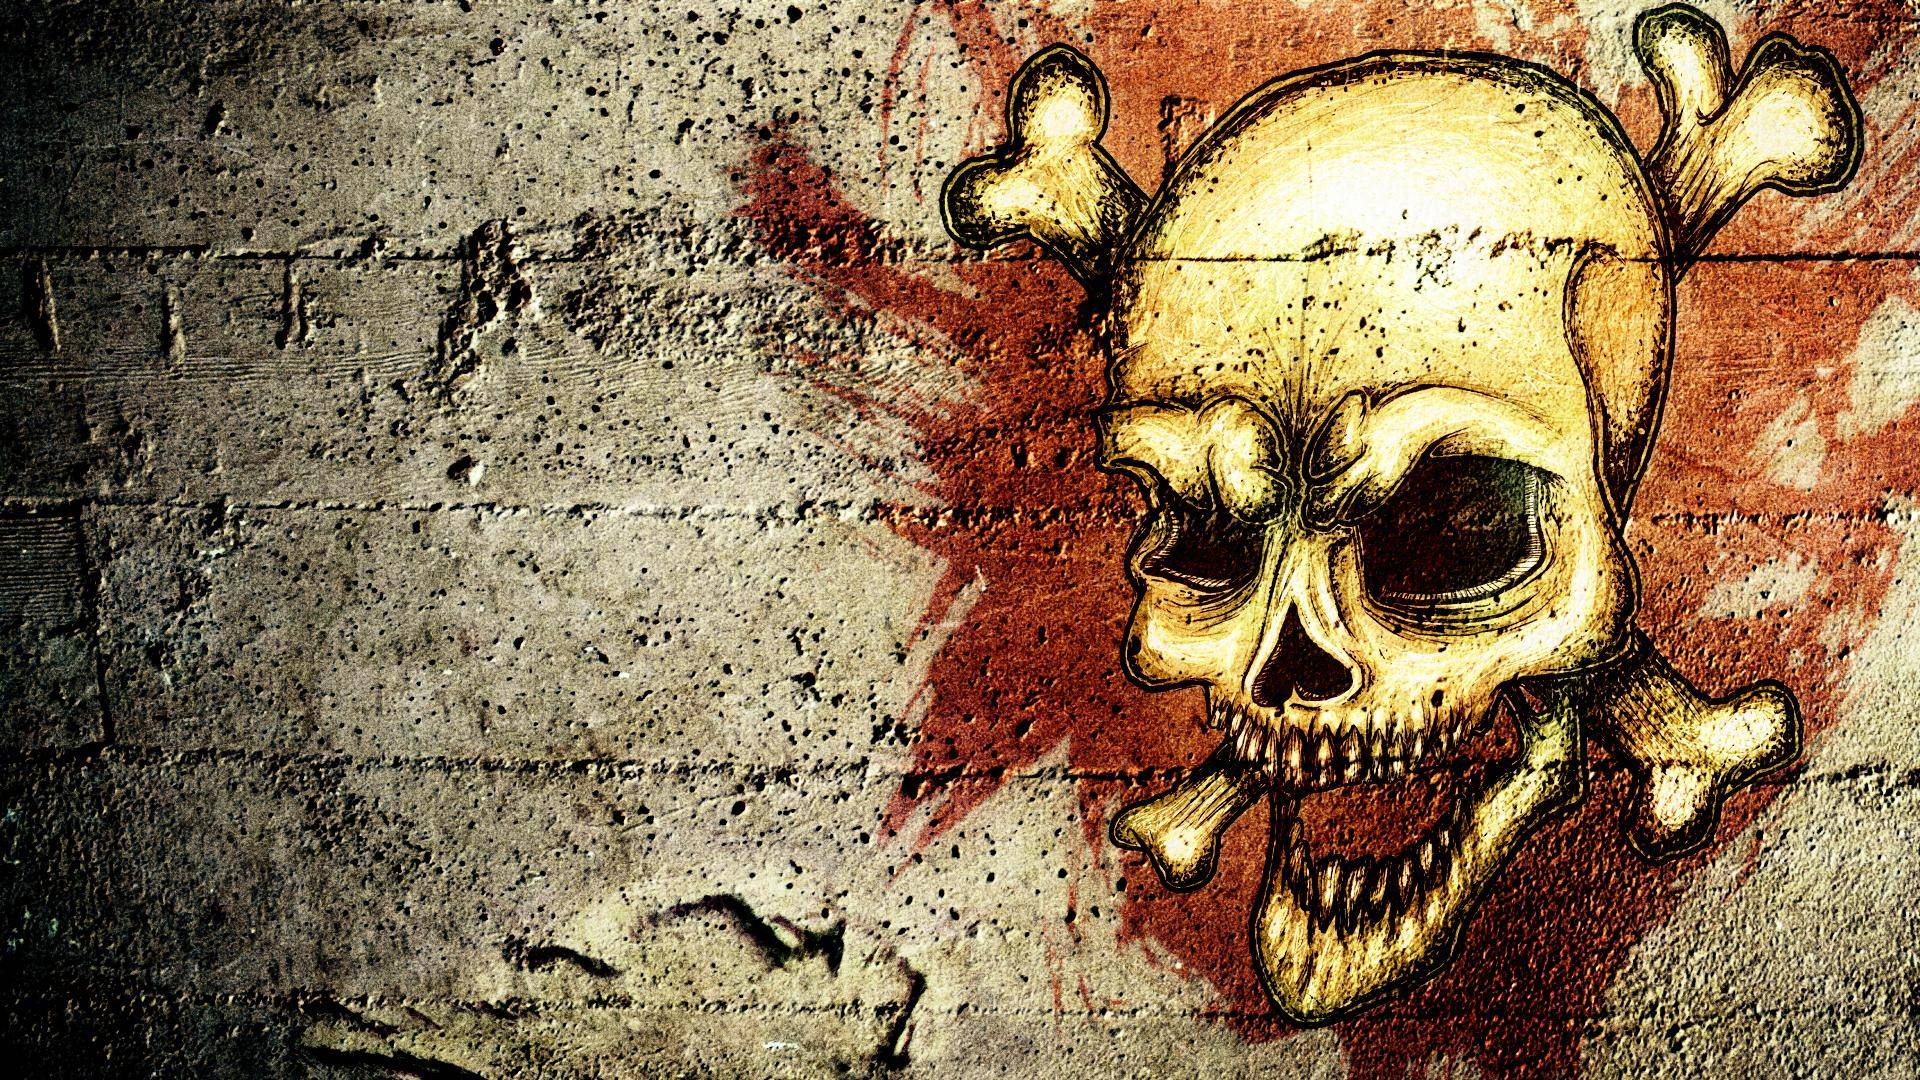 skull wallpaper wallpapers hd - photo #8